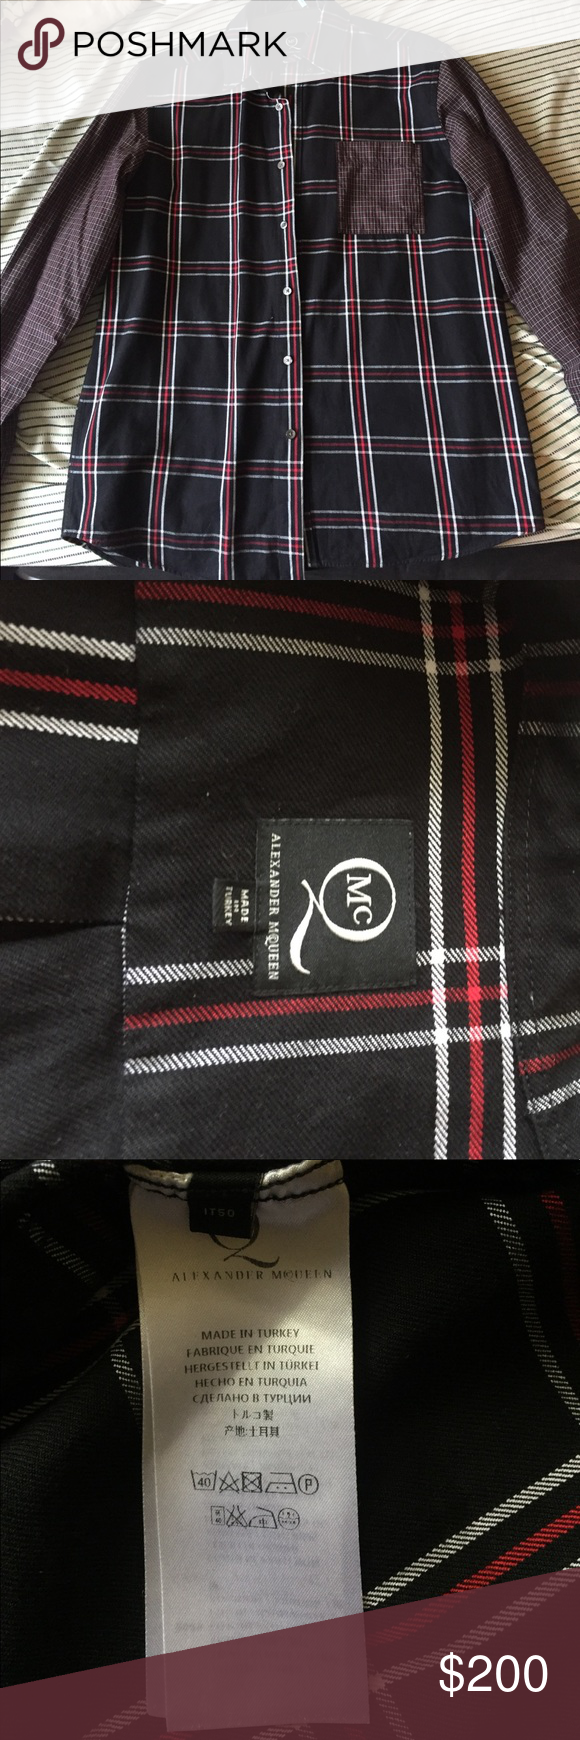 Flannel jacket with fur inside  Alexander McQueen Flannel Shirt  Red flannel shirt Flannel shirts